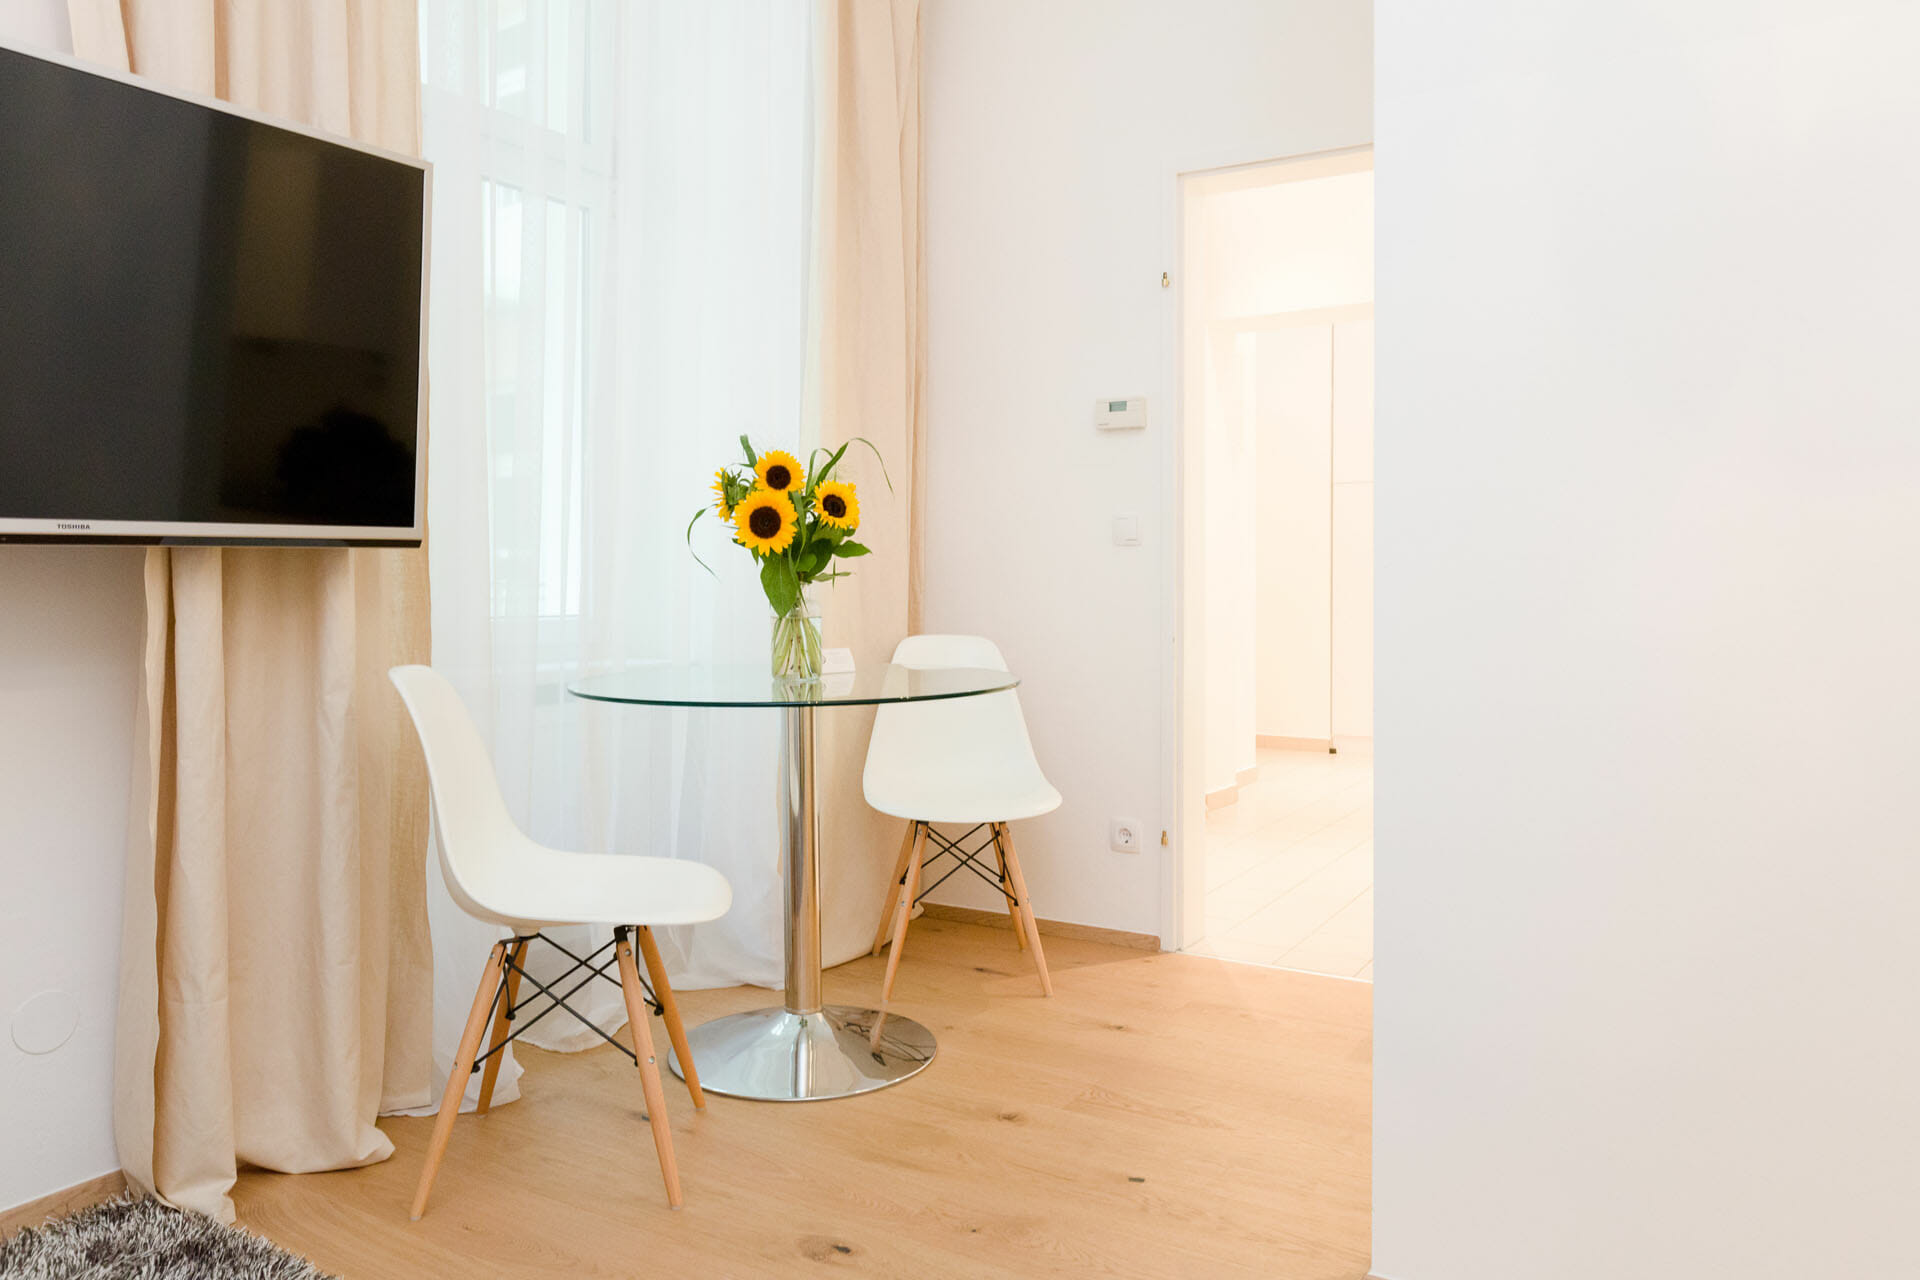 Prestige Apartments in Austria.Chic Vienna apartment in Alsergrund near the university.Kitchenware, sofa, TV, double bed.Apartments size in m²: 40 District: 1090 Alsergrund Bedroom: 0